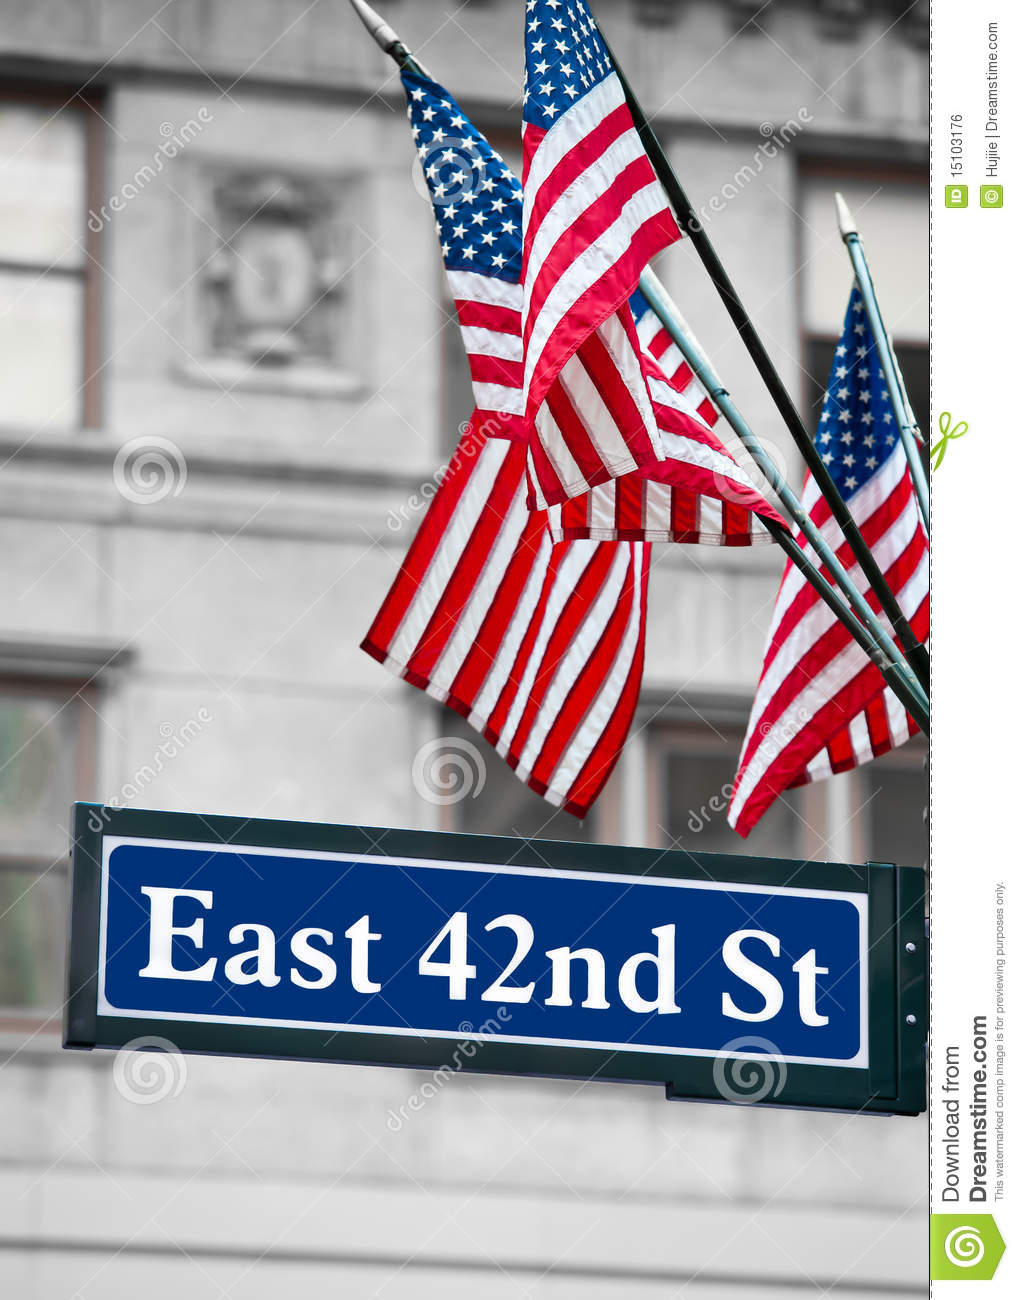 East 42nd Street Signs And US Flag Stock Photo - Image ...